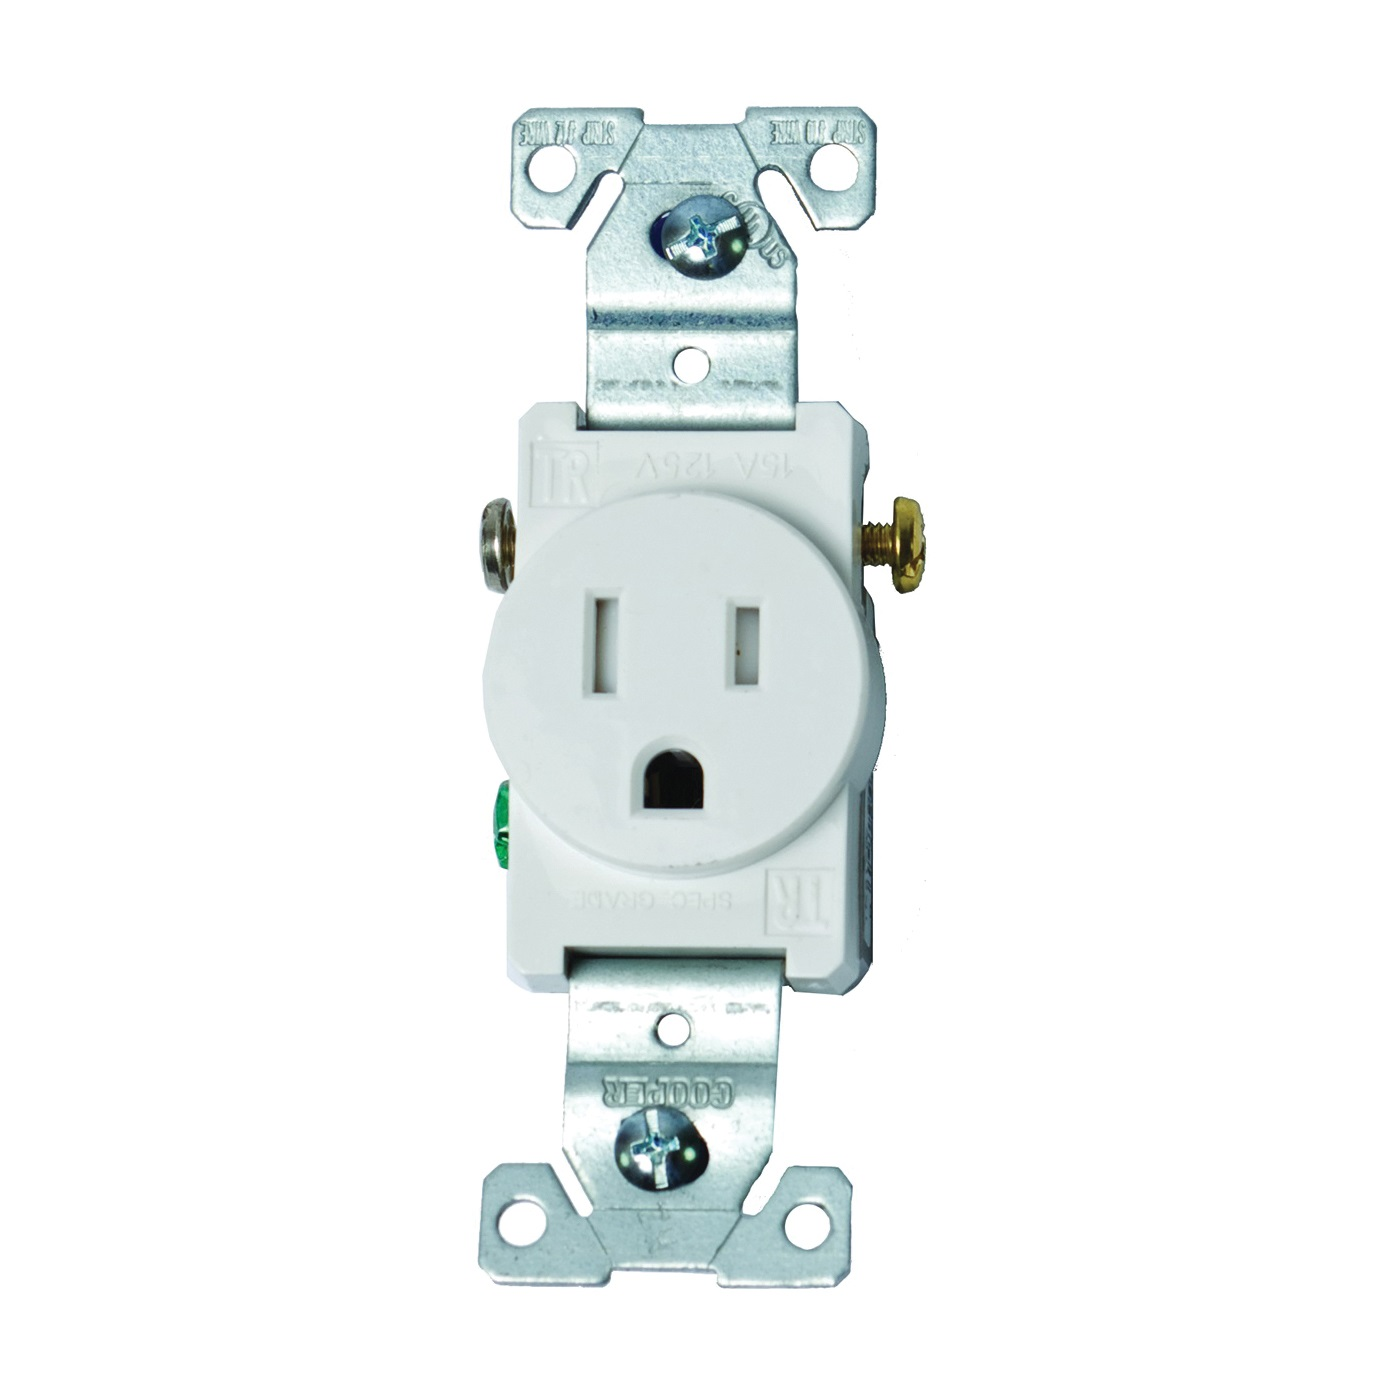 Picture of Eaton Wiring Devices TR817W-BOX Single Receptacle, 2-Pole, 125 V, 15 A, Side Wiring, NEMA 5-15R, White